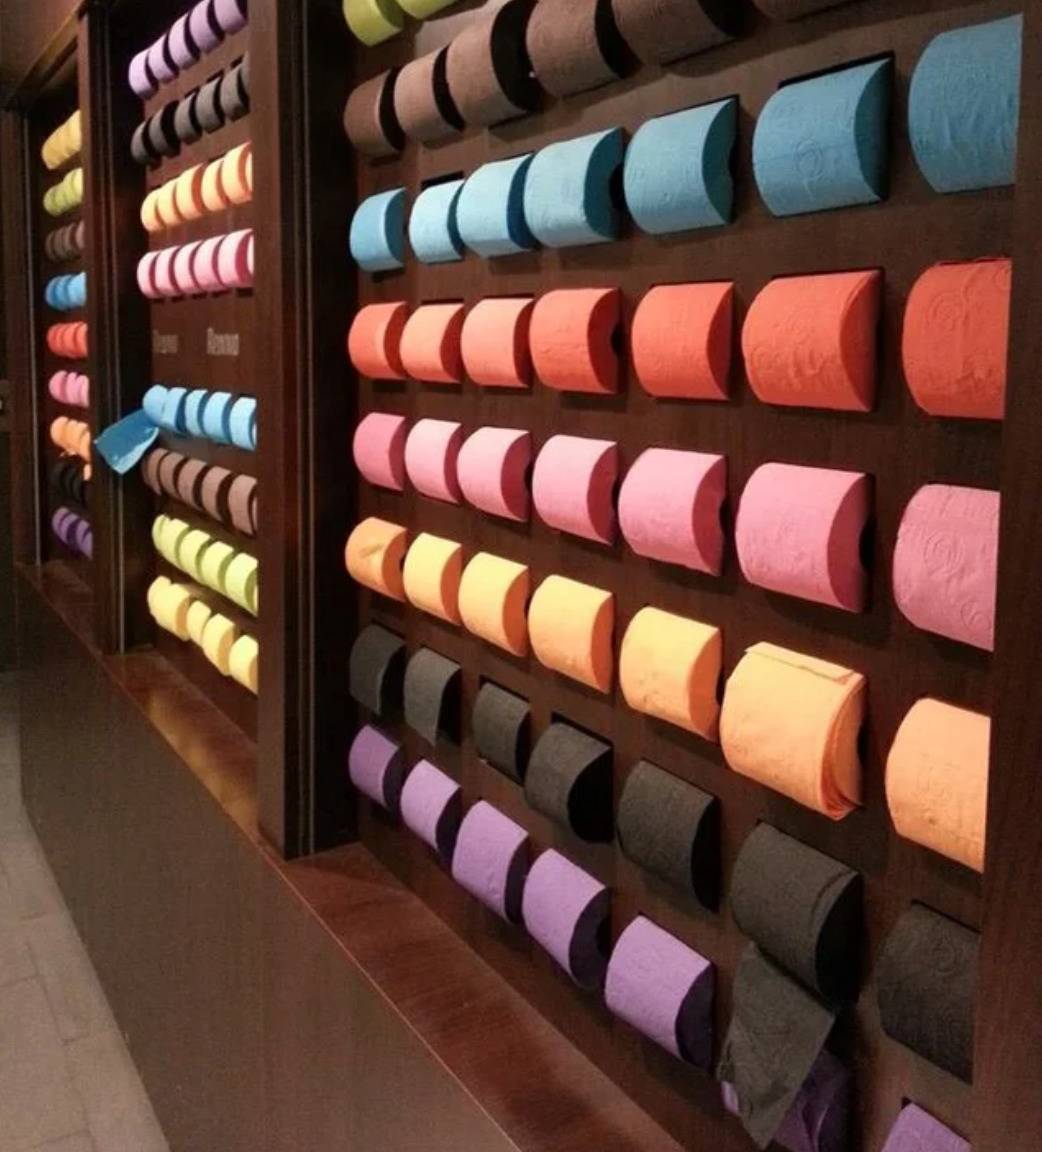 rows of different colored toilet paper rolls displayed on wall